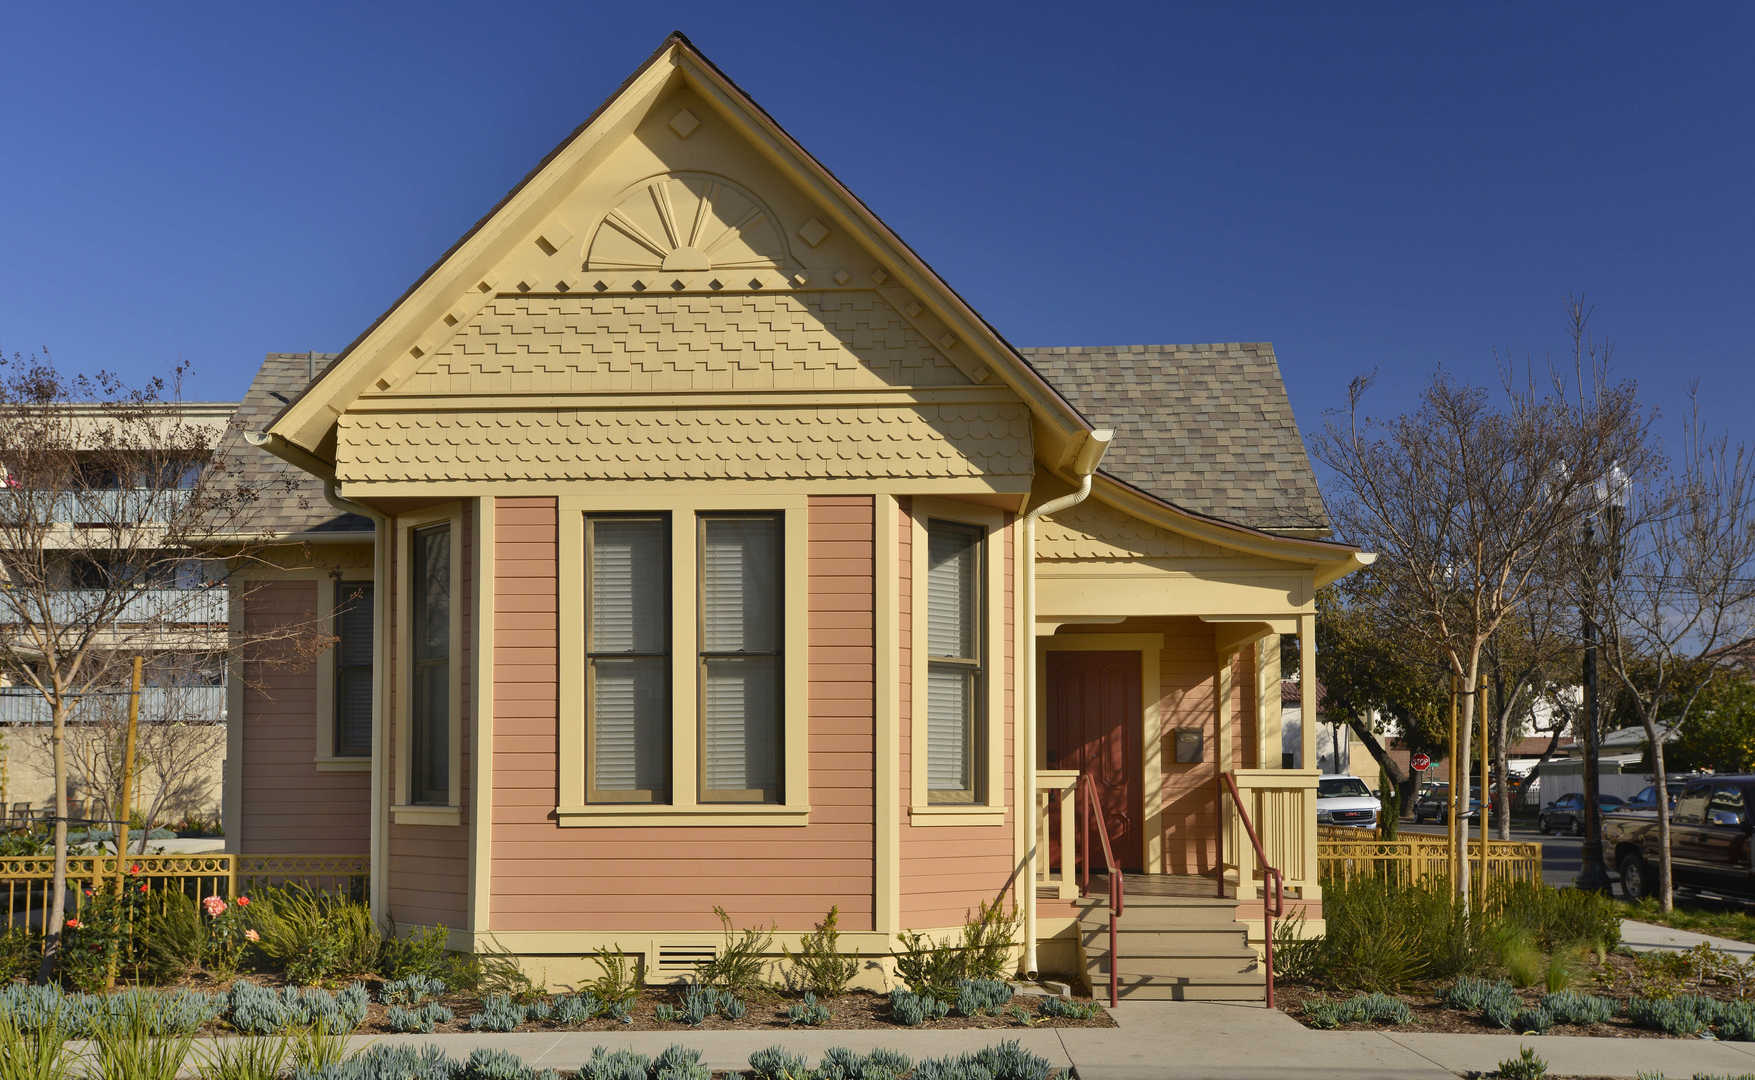 Related California Historic Preservation